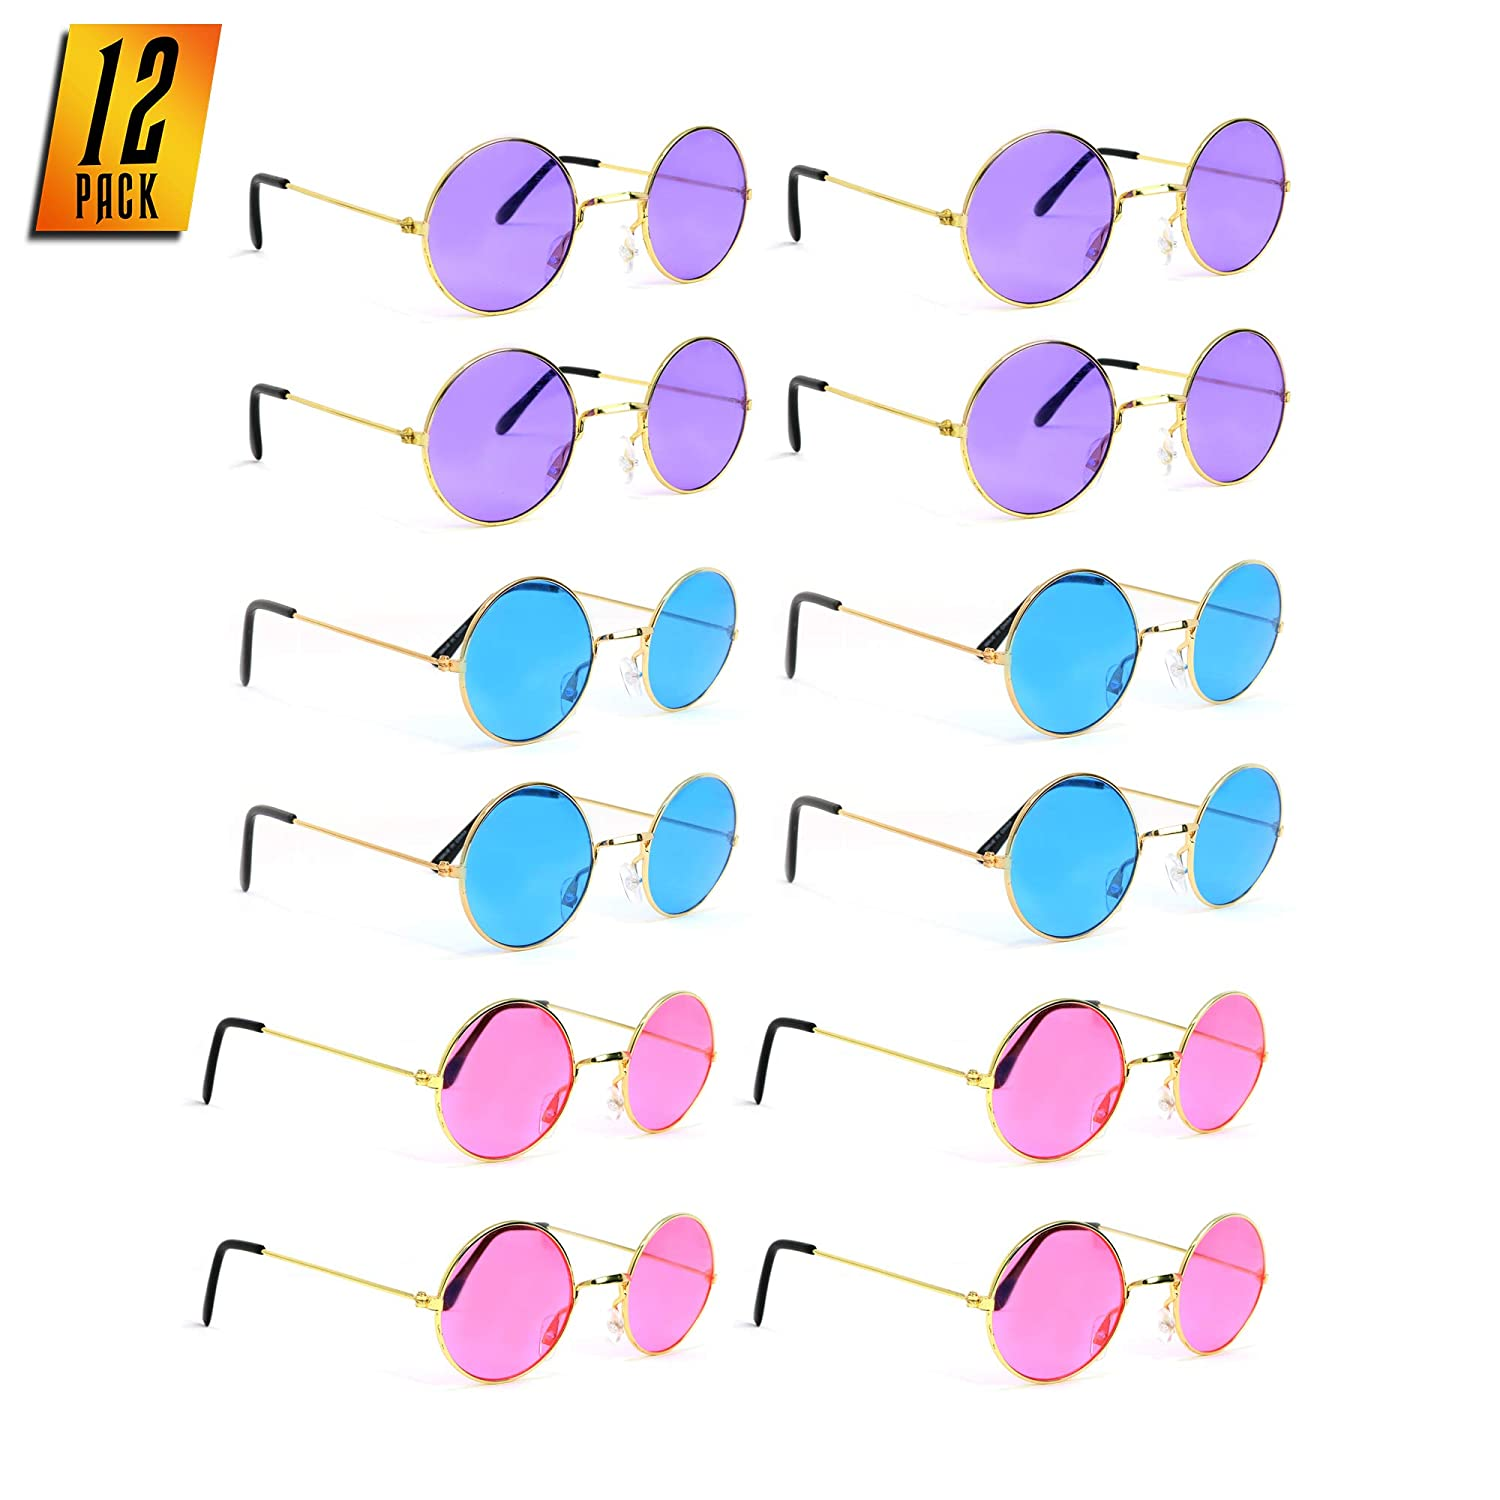 Skeleteen John Lennon Hippie Sunglasses – Pink Purple and Blue 60s Style Circle Glasses Favors - 12 Pairs